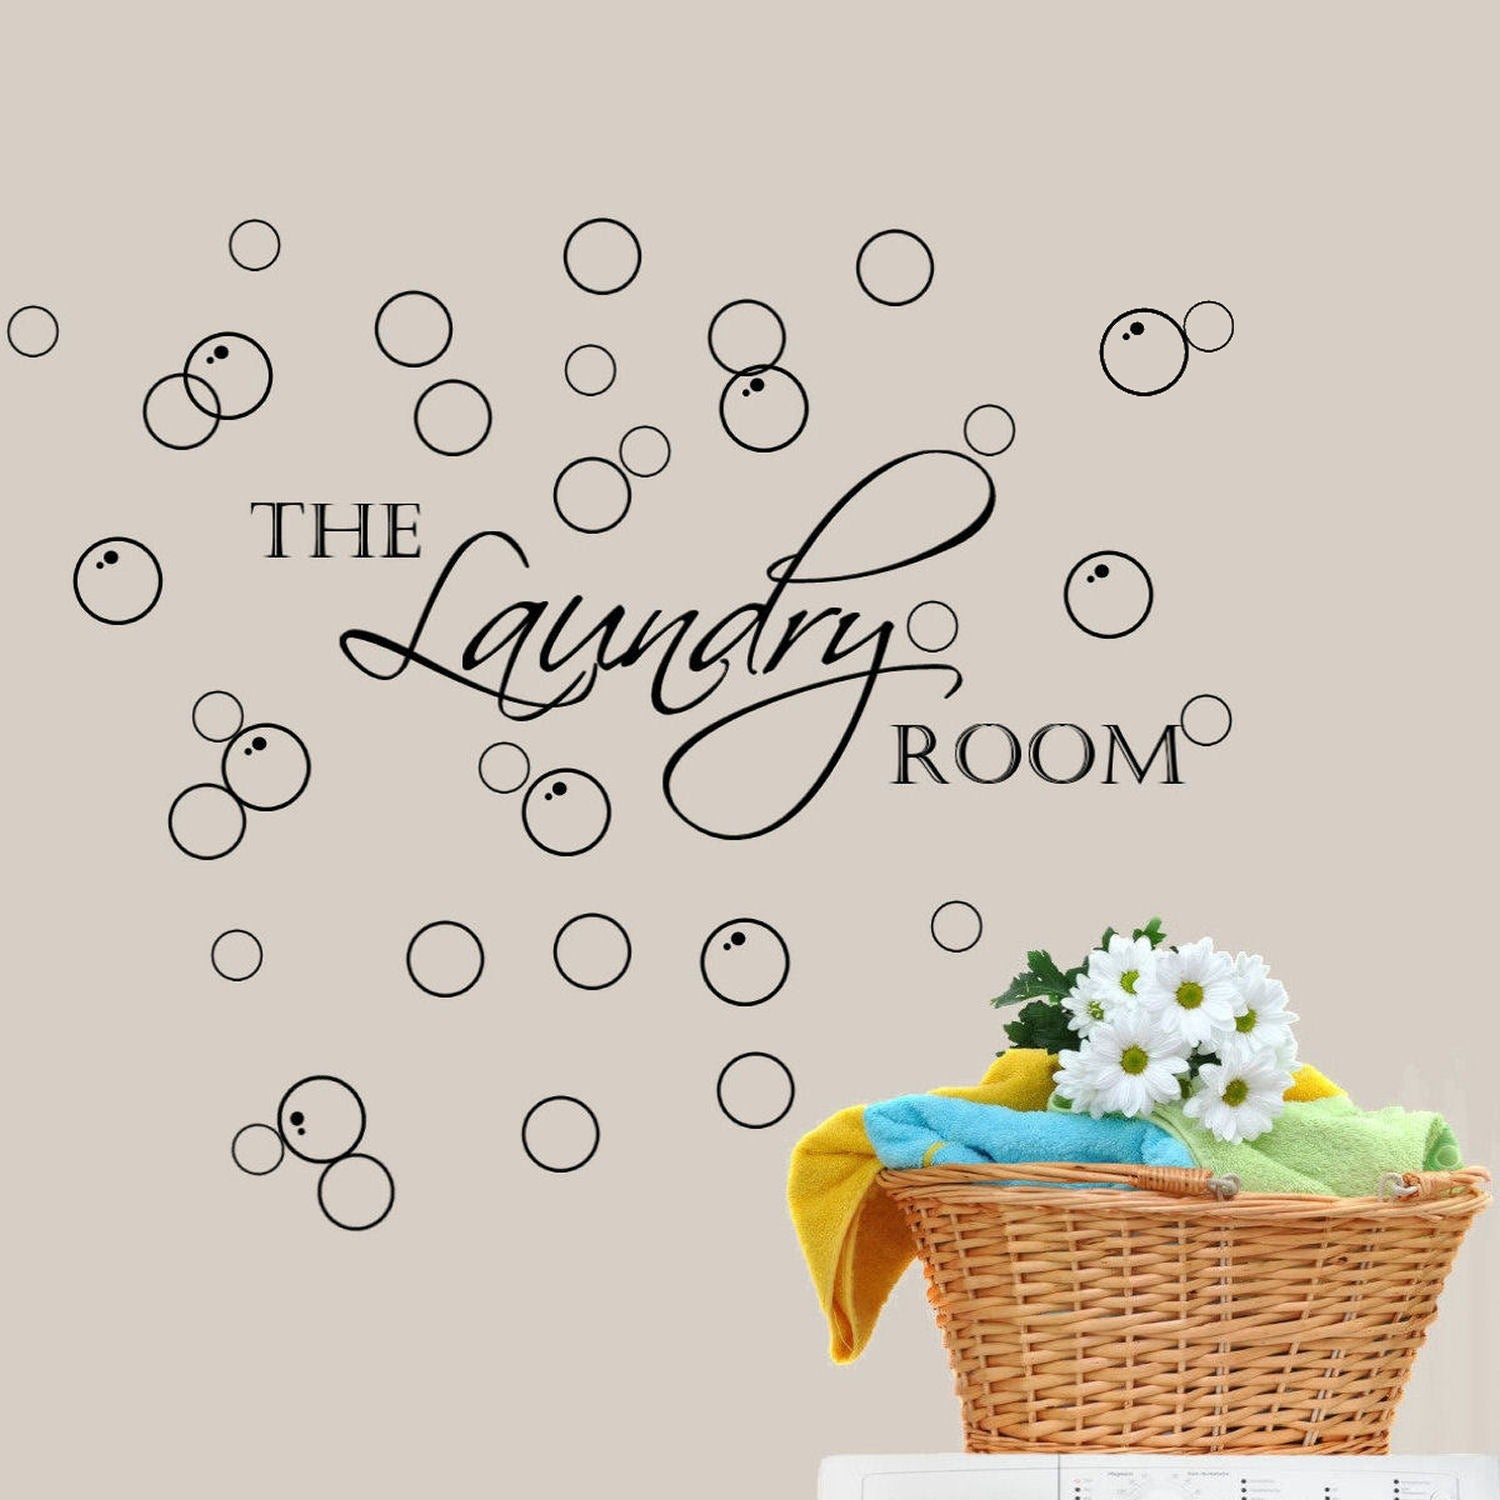 Laundry Room Vinyl Wall Art Laundry Room' With Bubbles Vinyl Wall Art Decal  Free Shipping On